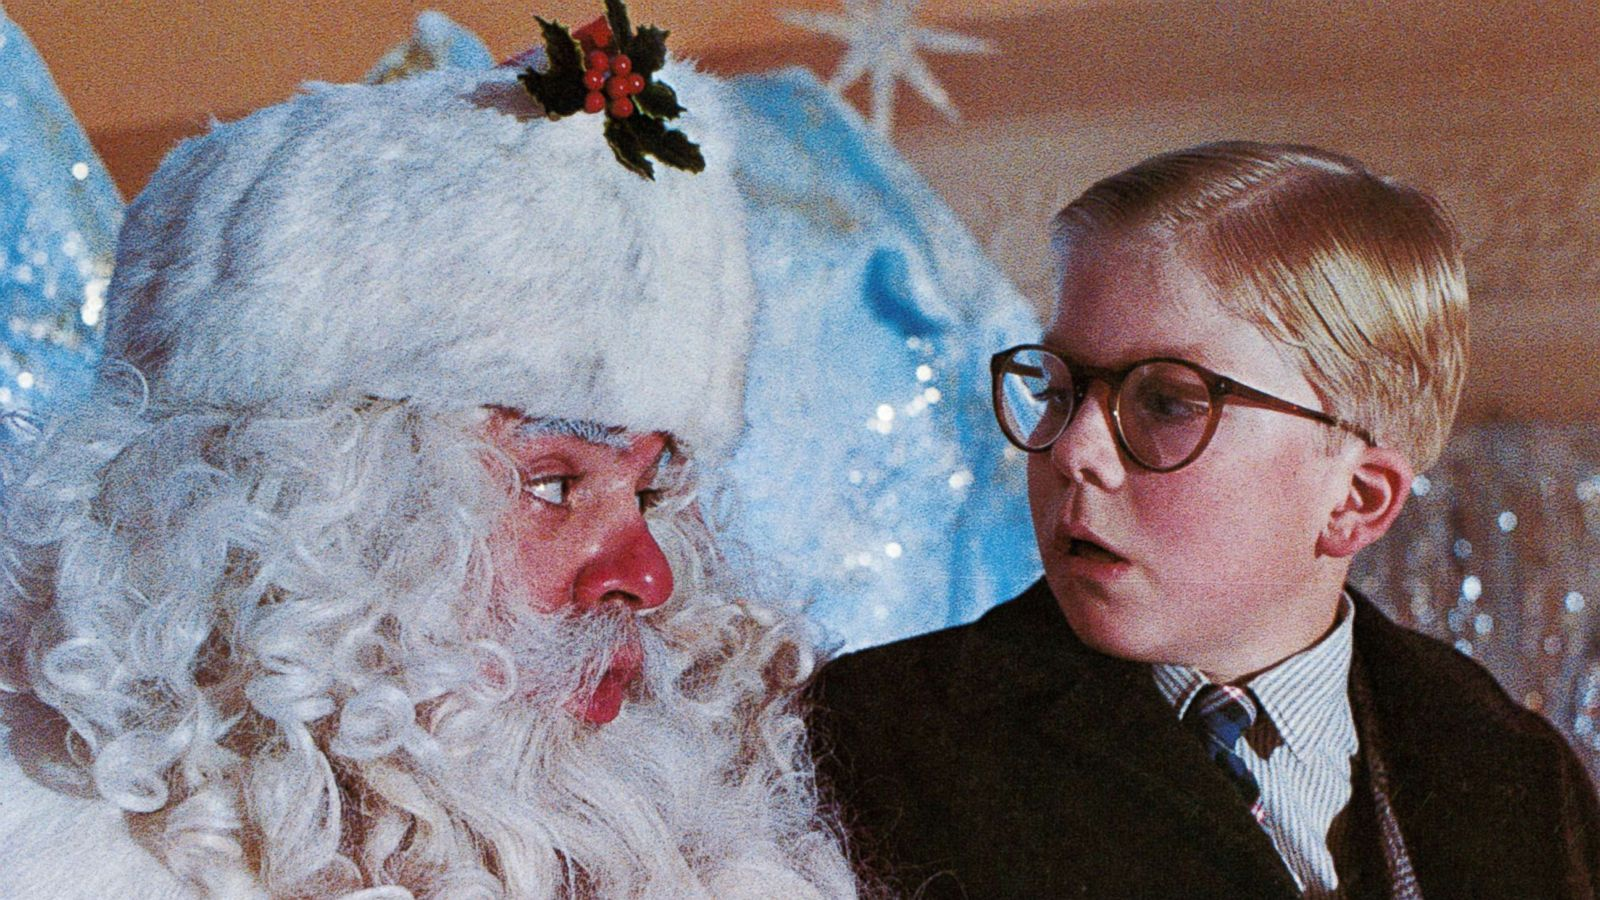 peter billingsley from child actor in a christmas story to hollywood power player abc news - The Christmas Box Cast